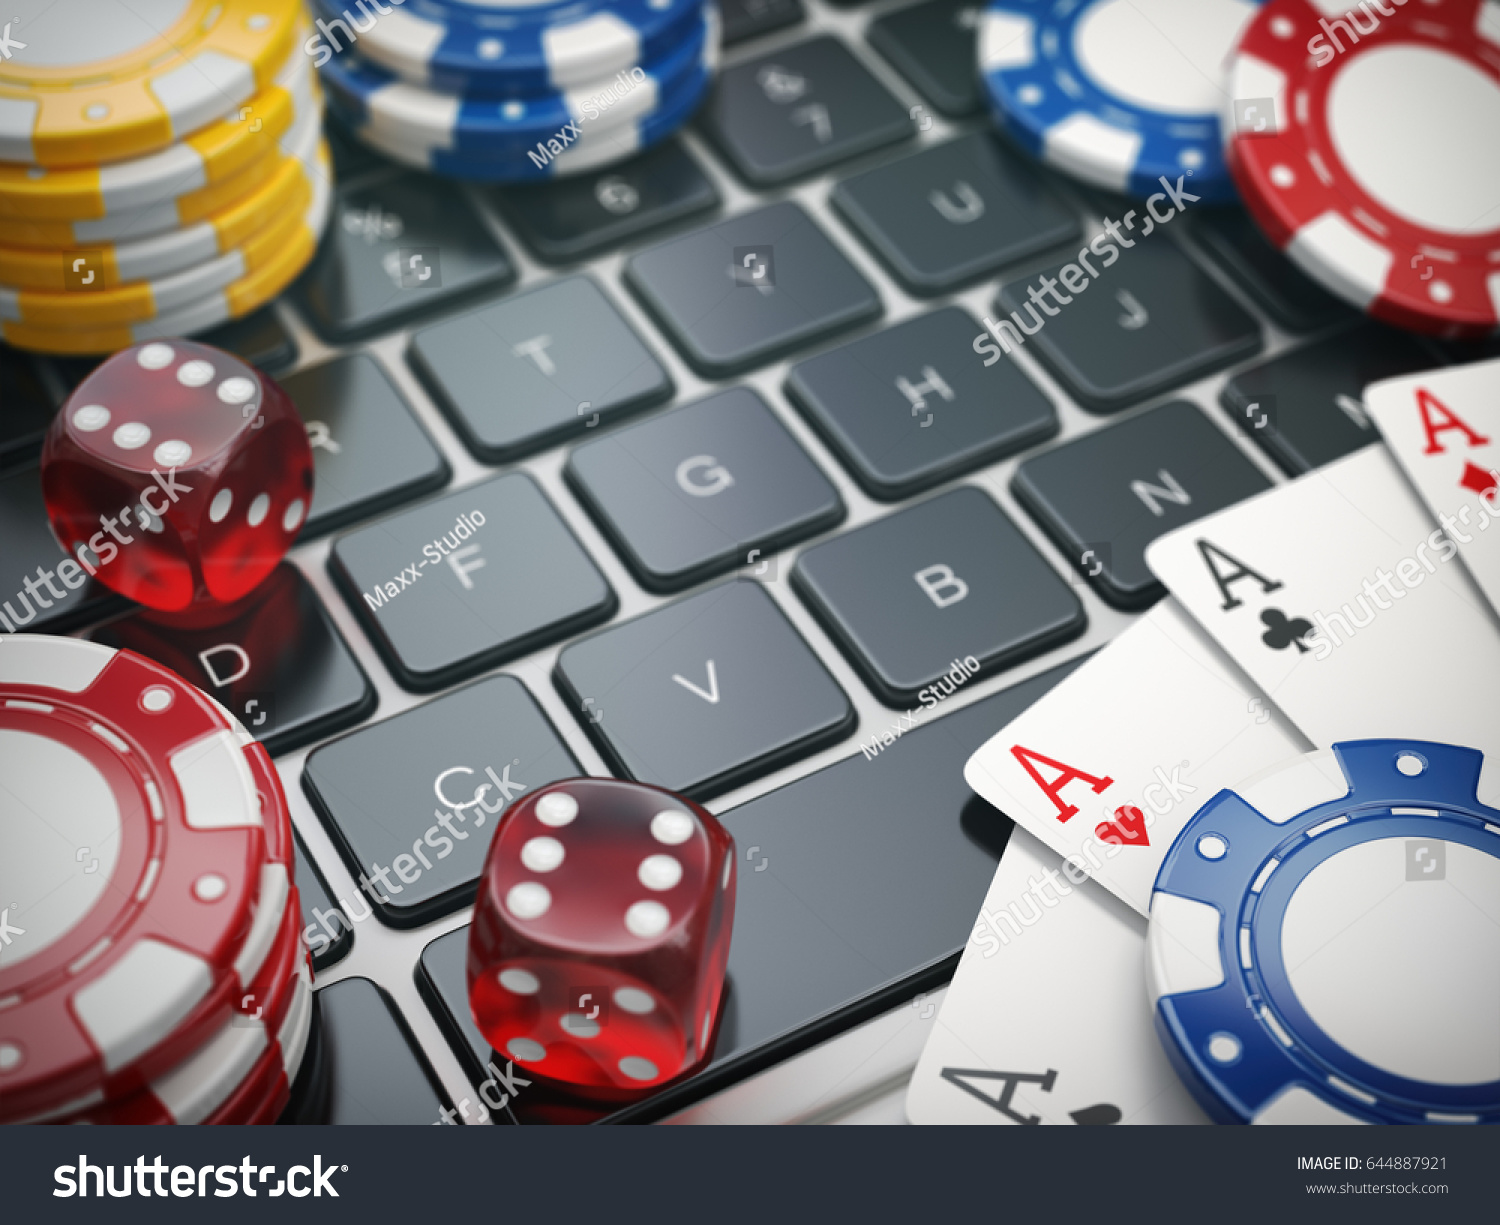 Cacino on line gambling for roulette game